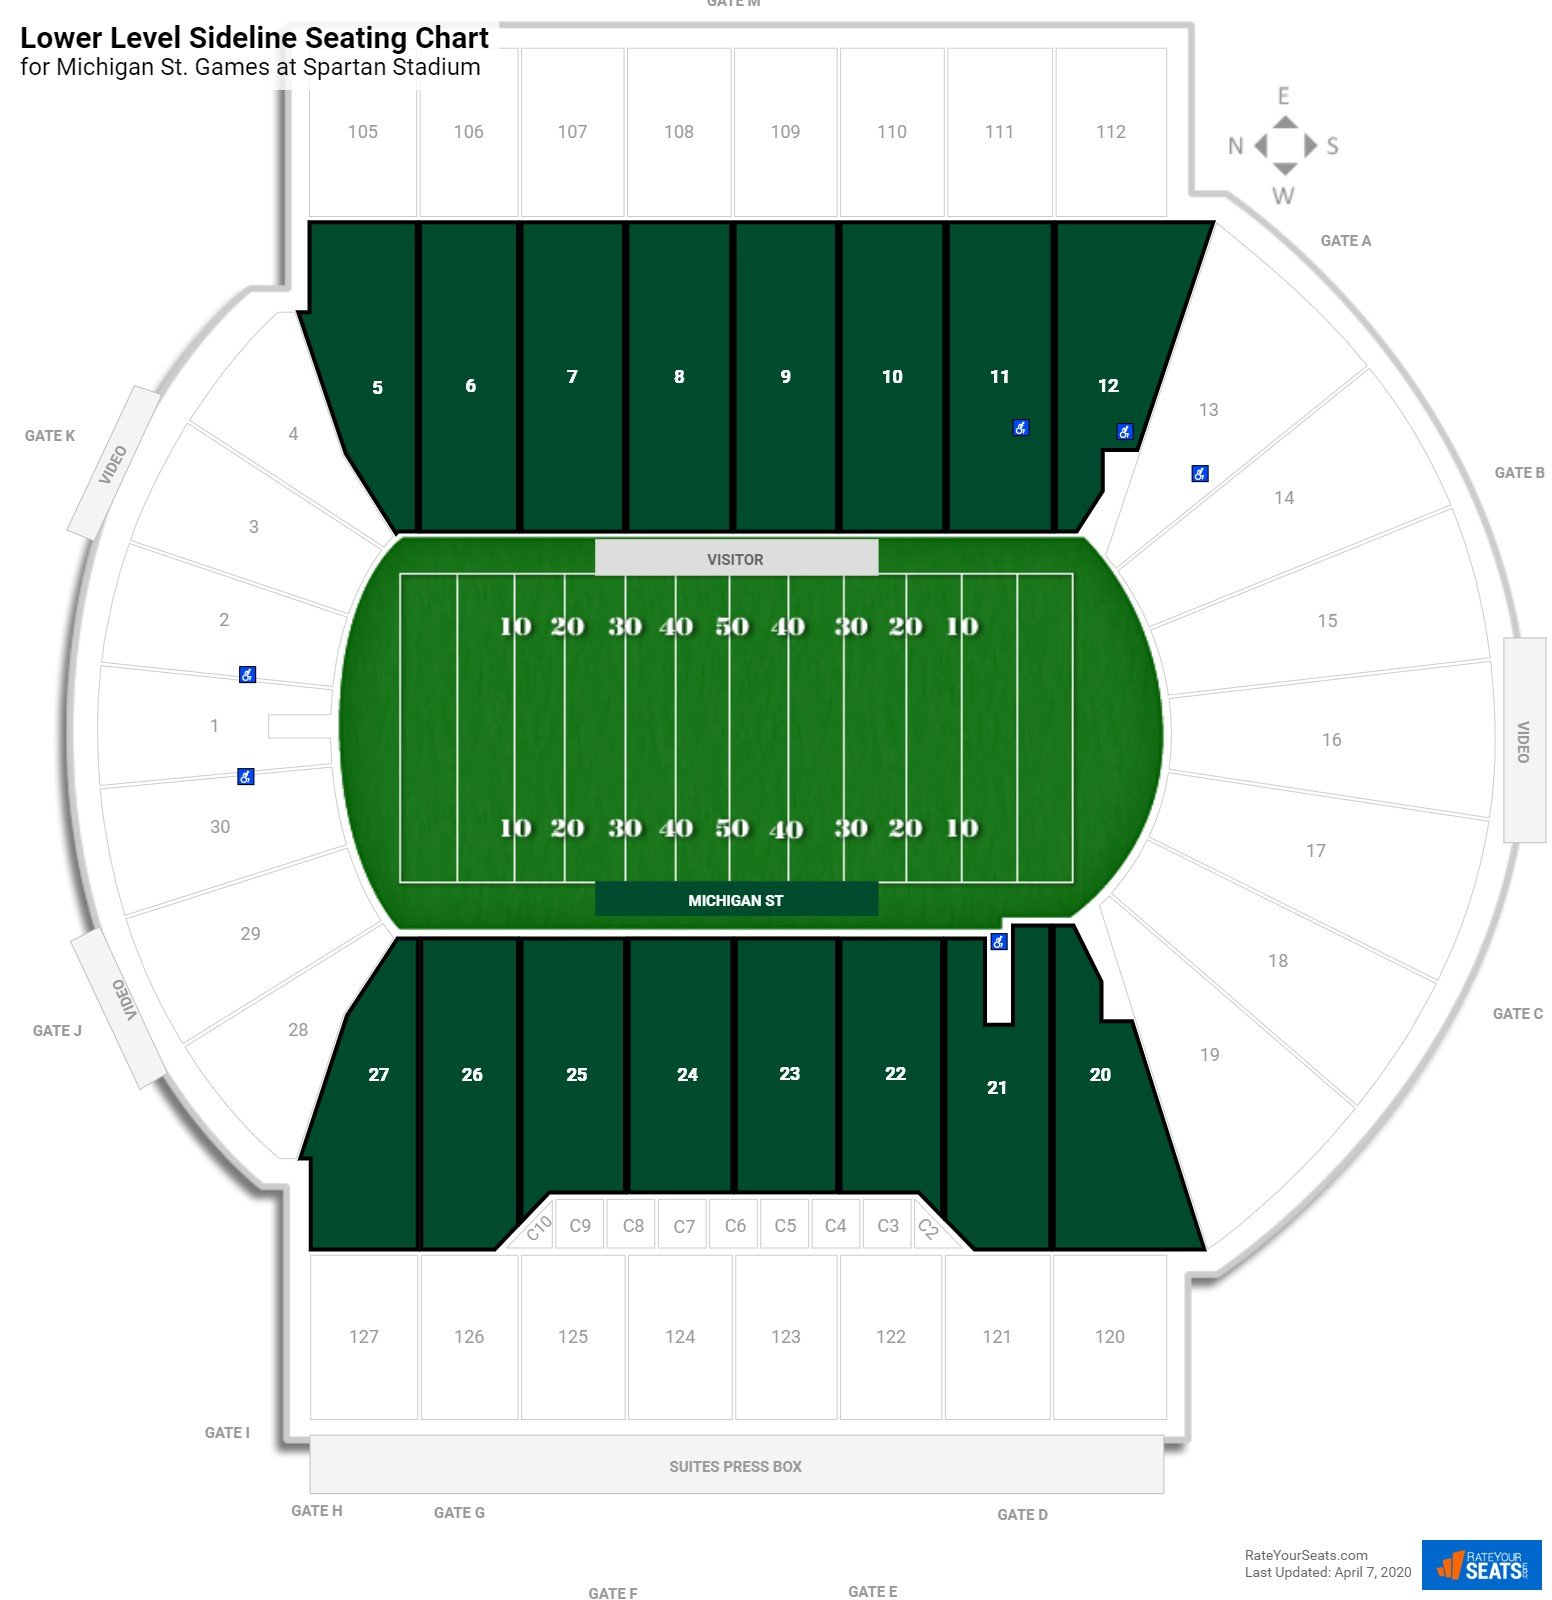 Spartan Stadium Lower Level Sideline seating chart